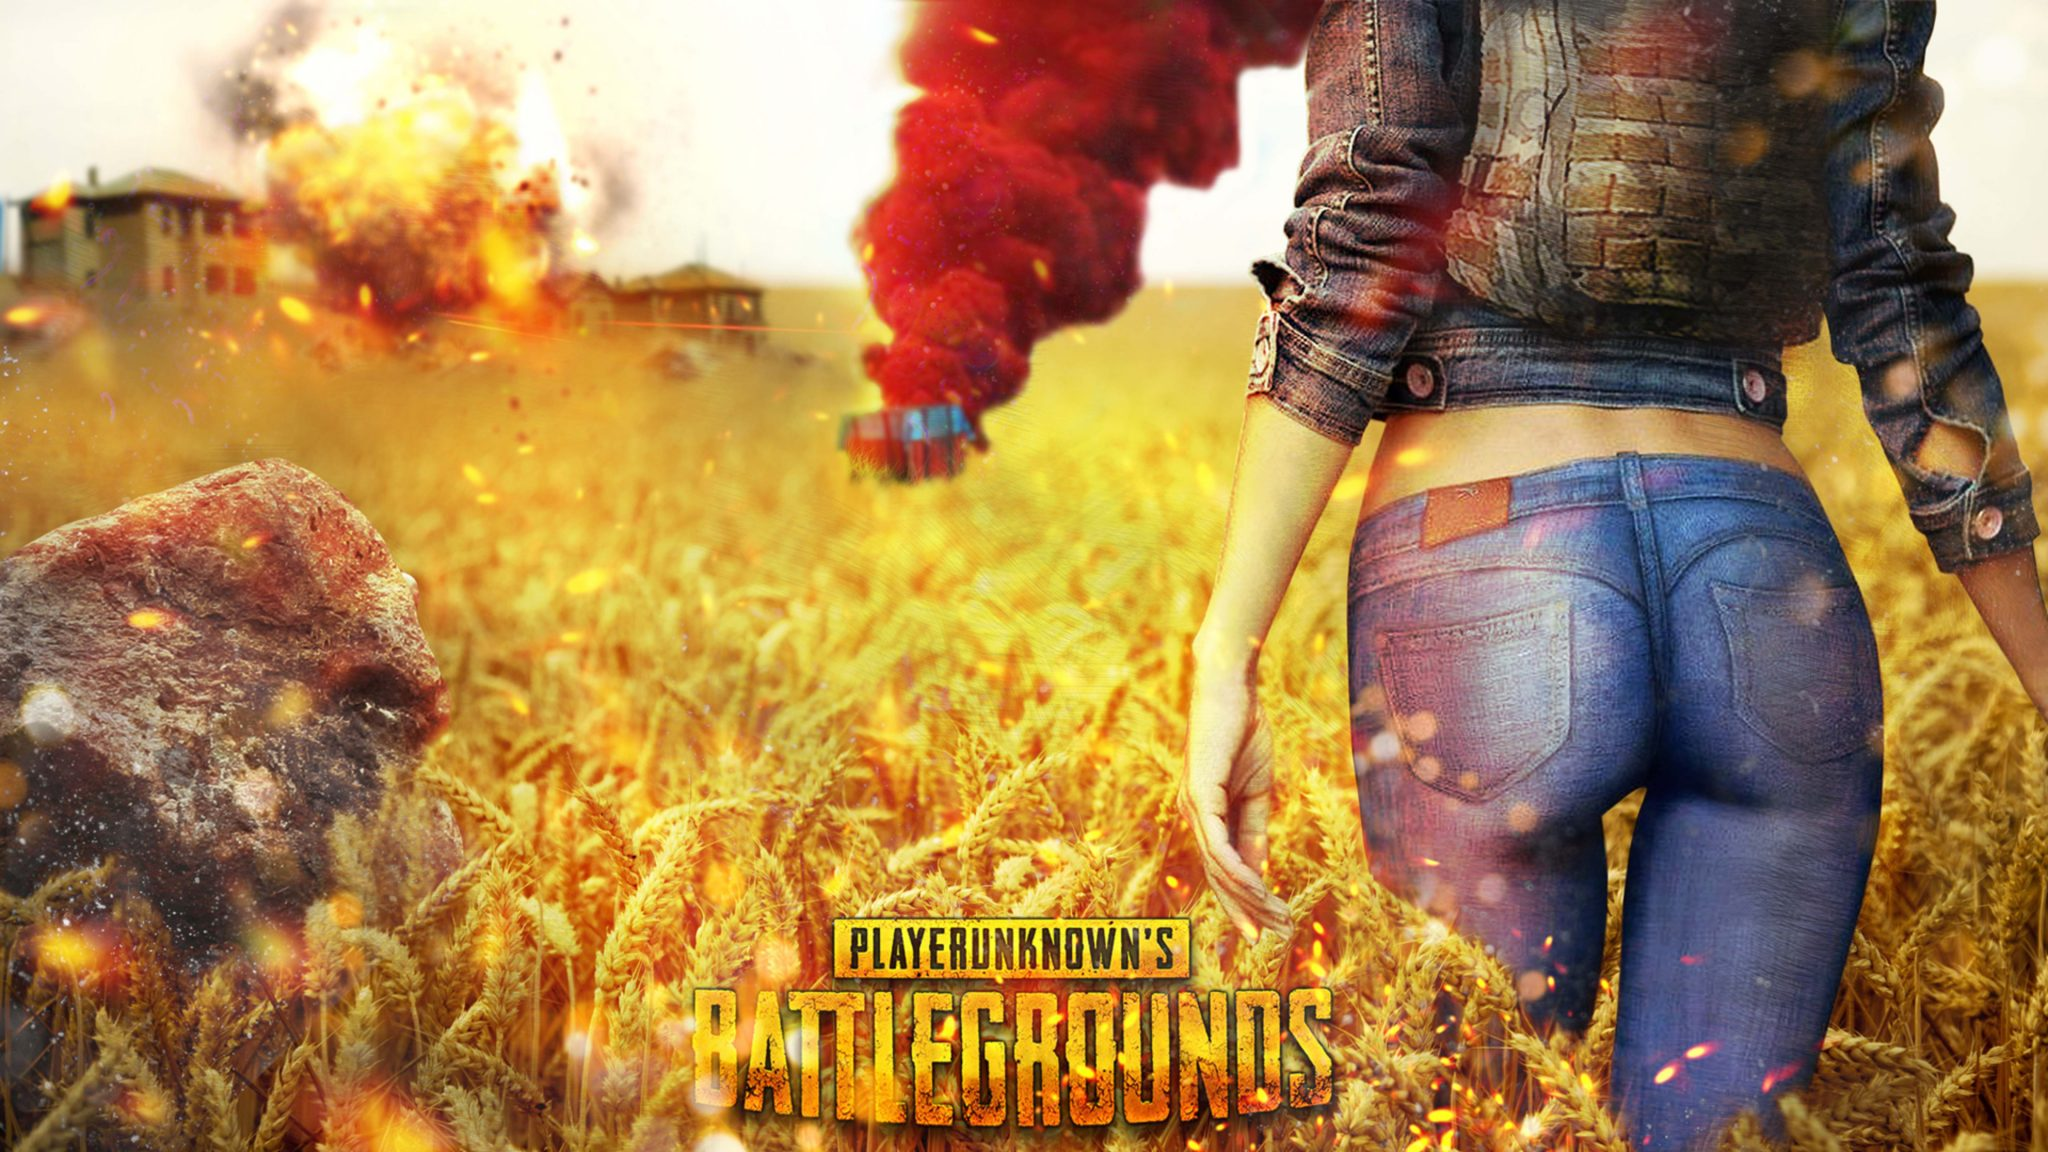 Pubg Wallpaper Windows 7: Playerunknowns Battlegrounds PUBG Cover 4K Wallpaper